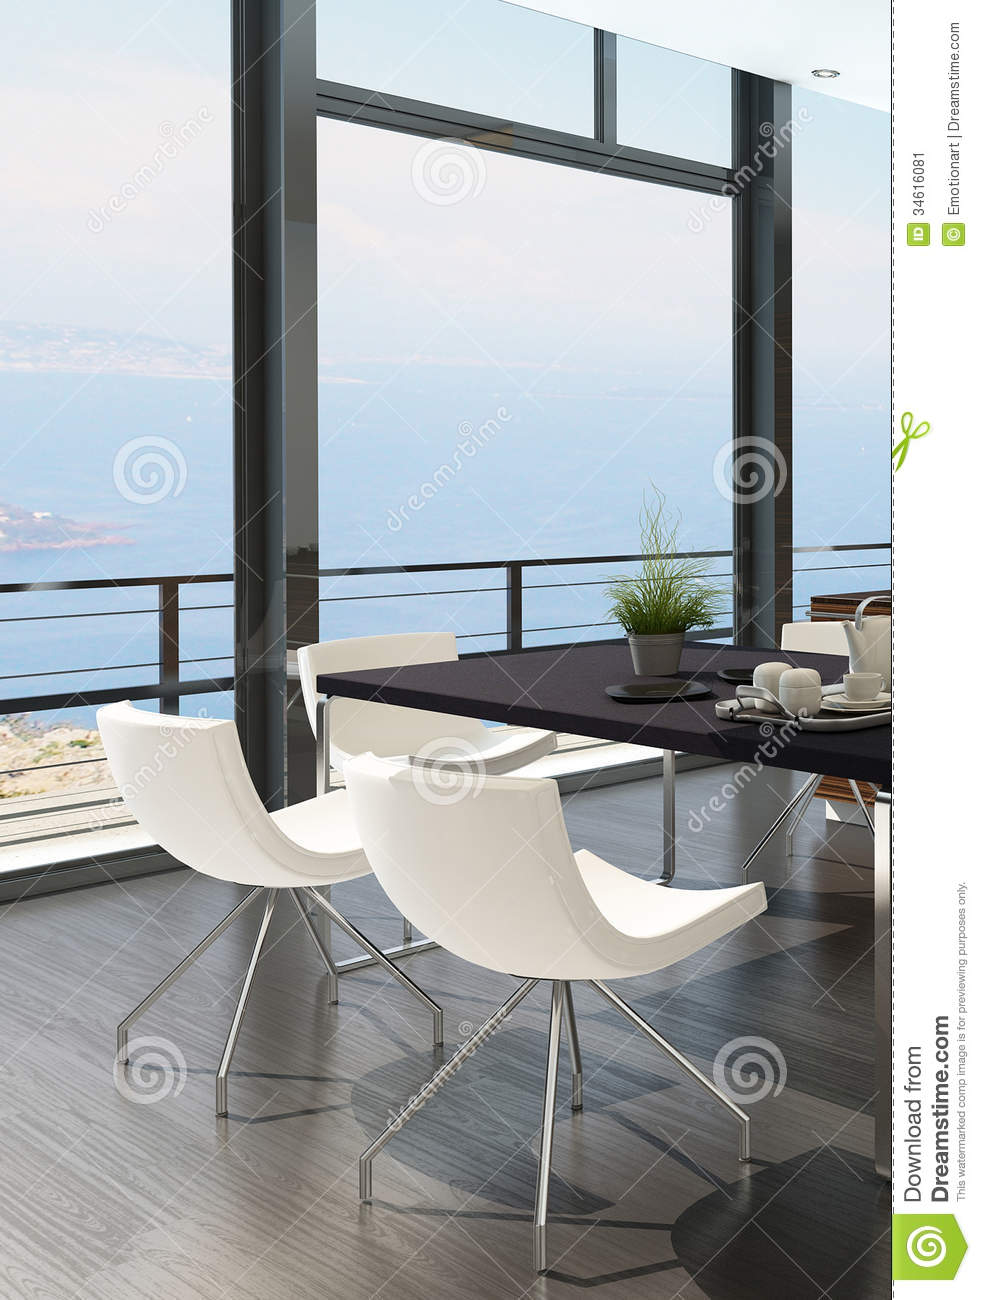 Modern Dining Table Against Floor To Ceiling Window With